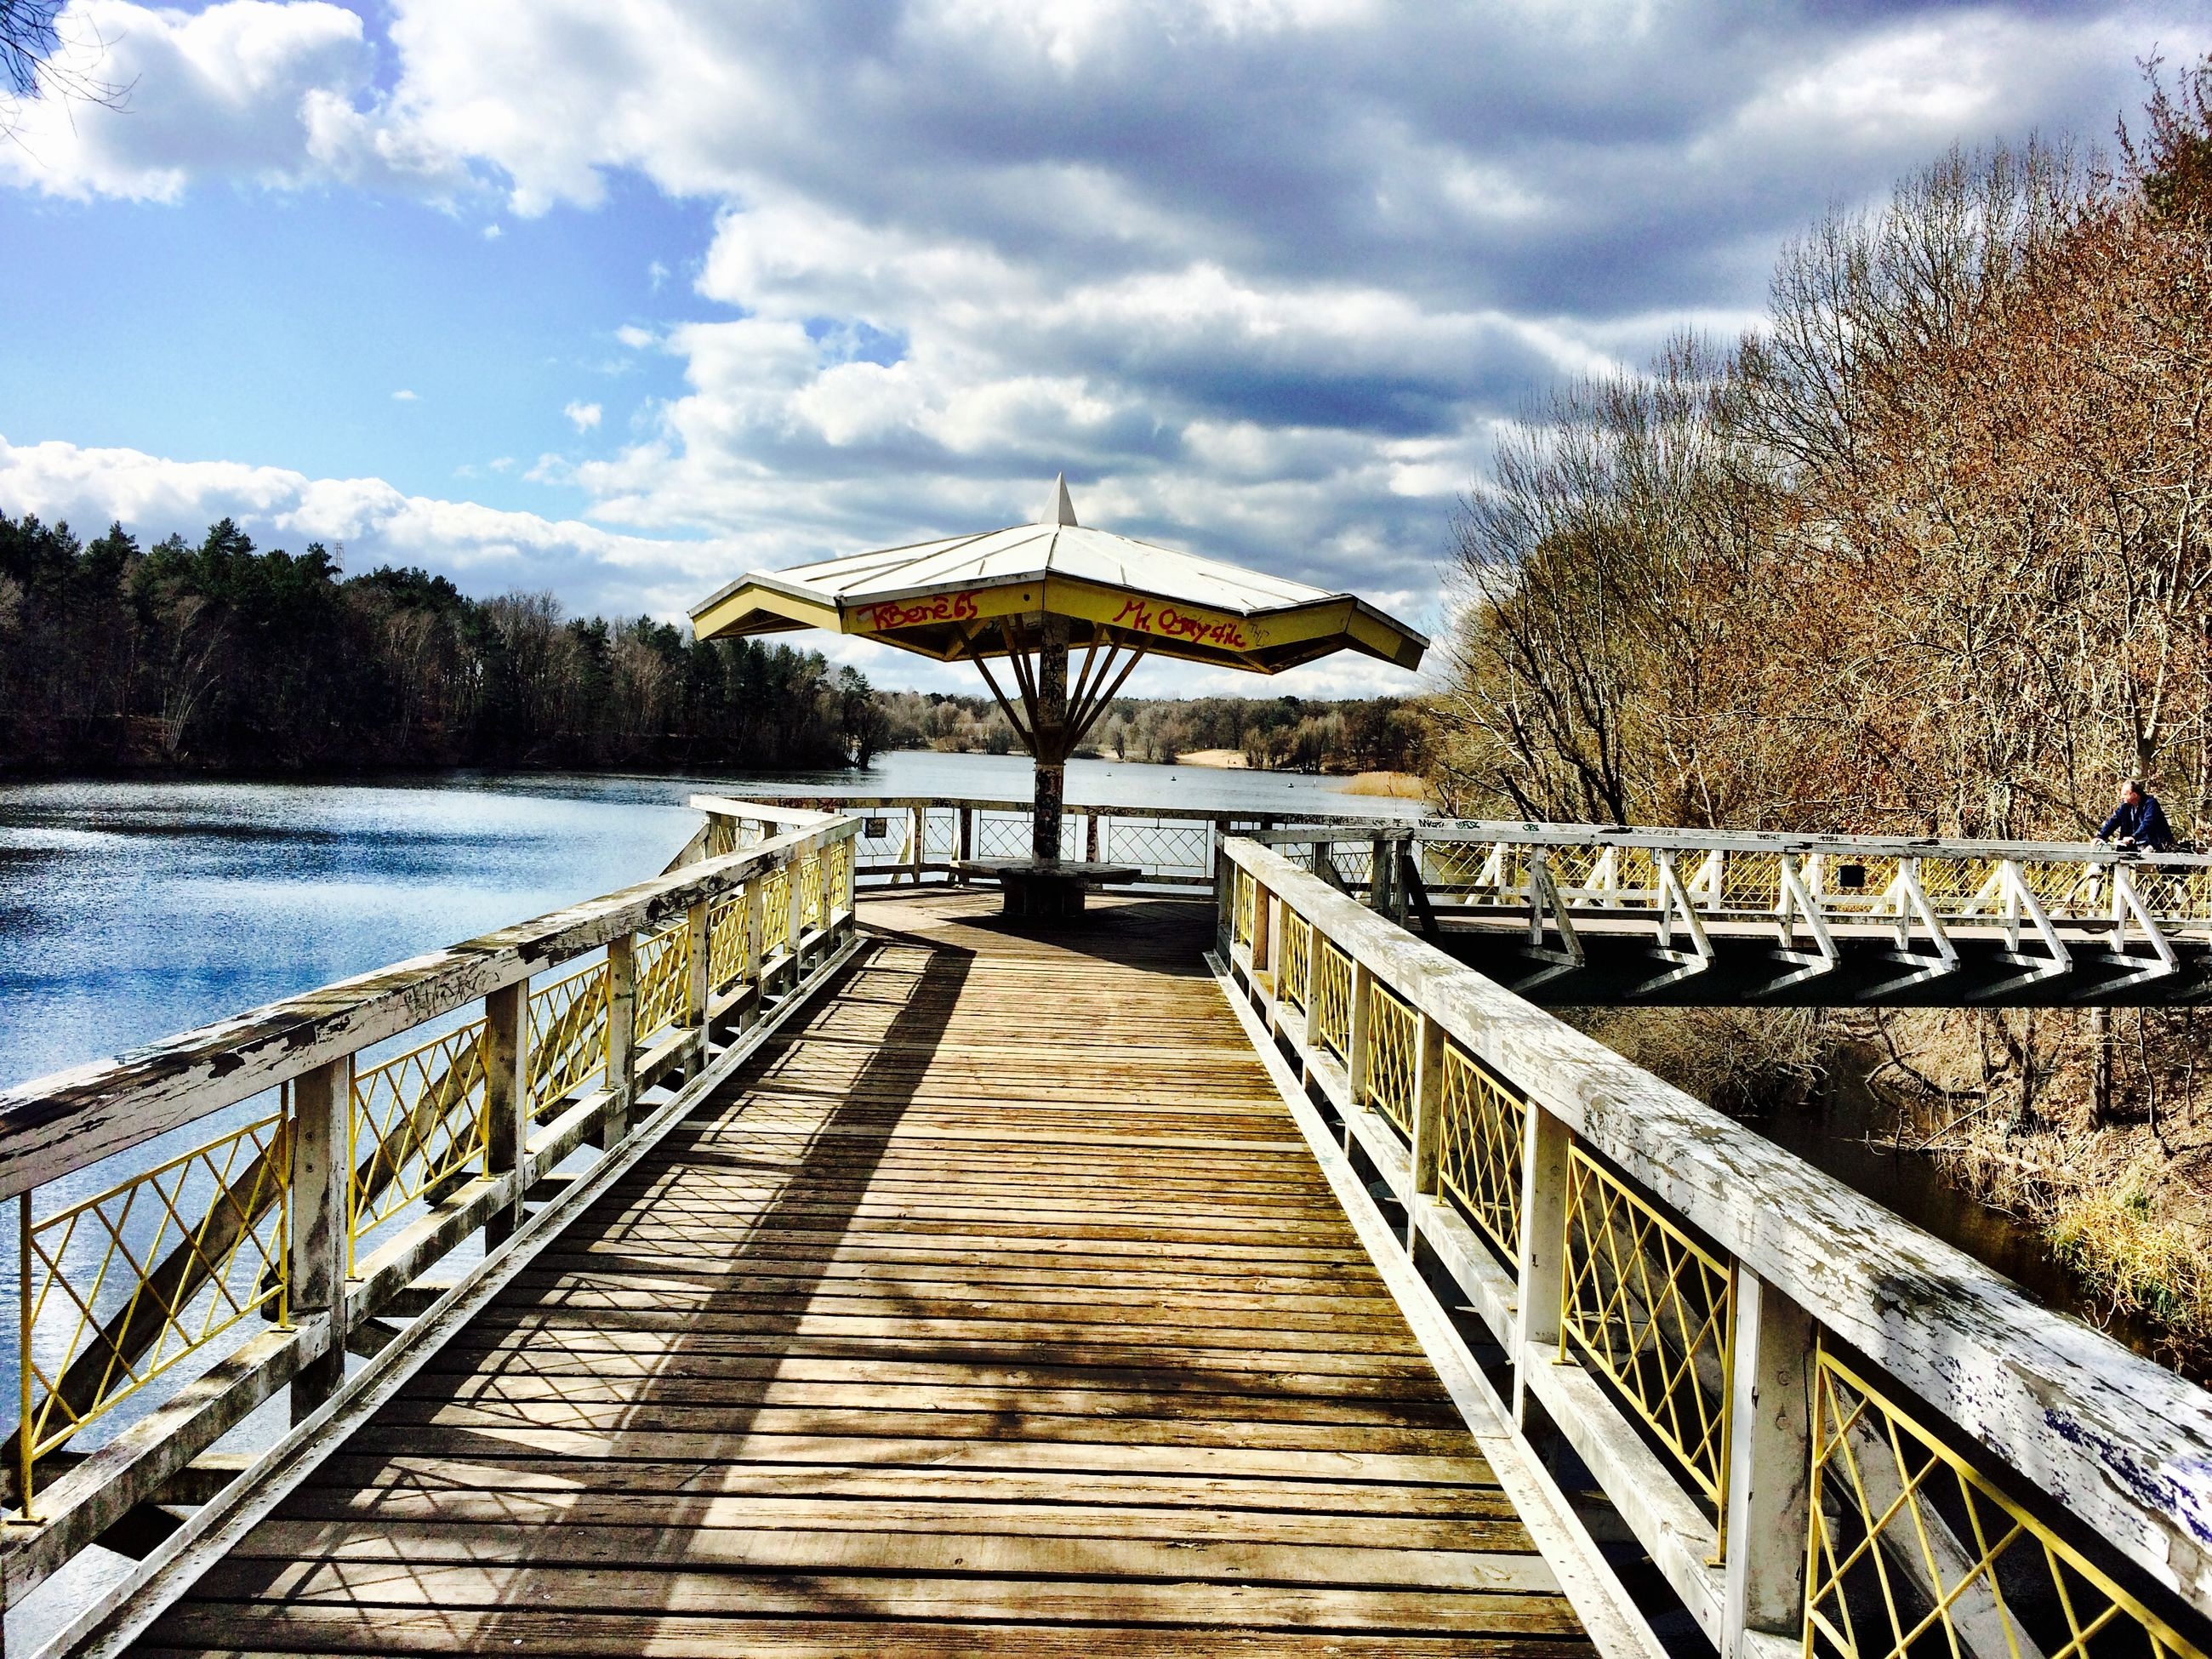 the way forward, railing, sky, water, tranquility, pier, wood - material, built structure, tranquil scene, tree, cloud - sky, diminishing perspective, footbridge, scenics, boardwalk, nature, beauty in nature, lake, architecture, wood